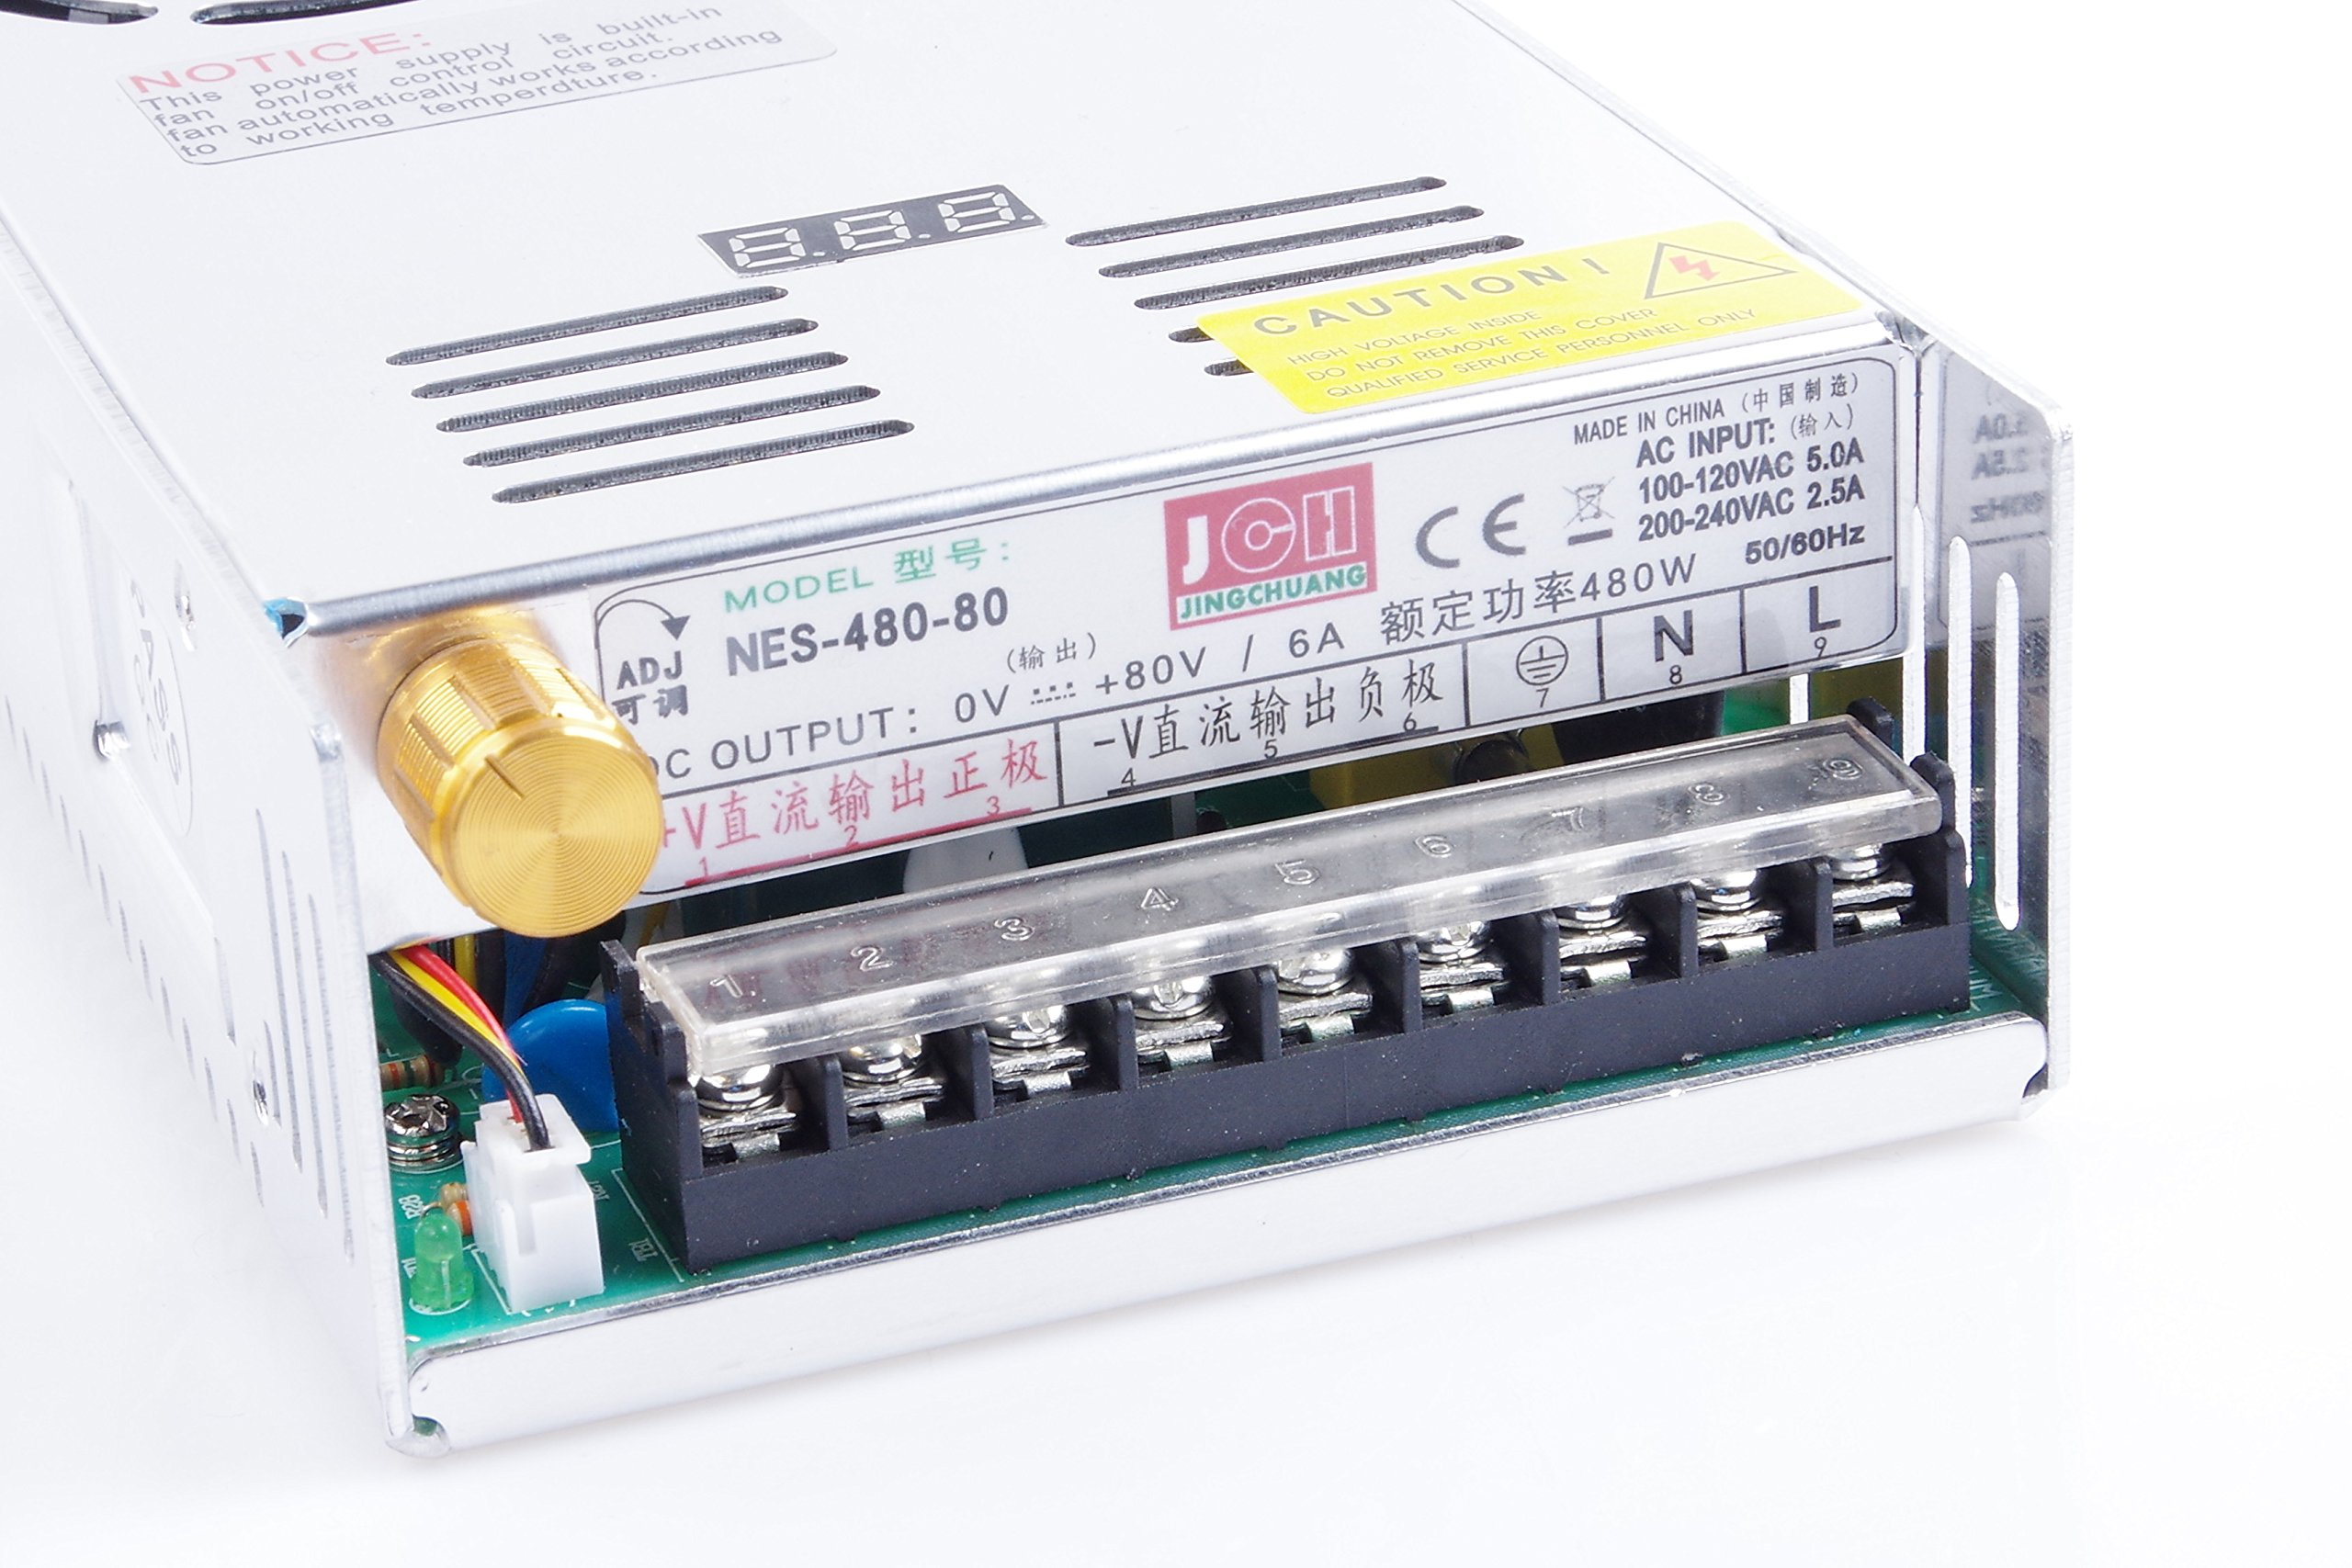 Adjustable DC Power Voltage Converter AC 110V-220V to DC 0-80V Module 80V 6A Switching Power Supply Digital Display 480W Voltage Regulator Transformer Built in Cooling Fan (DC 0-80V 6A)